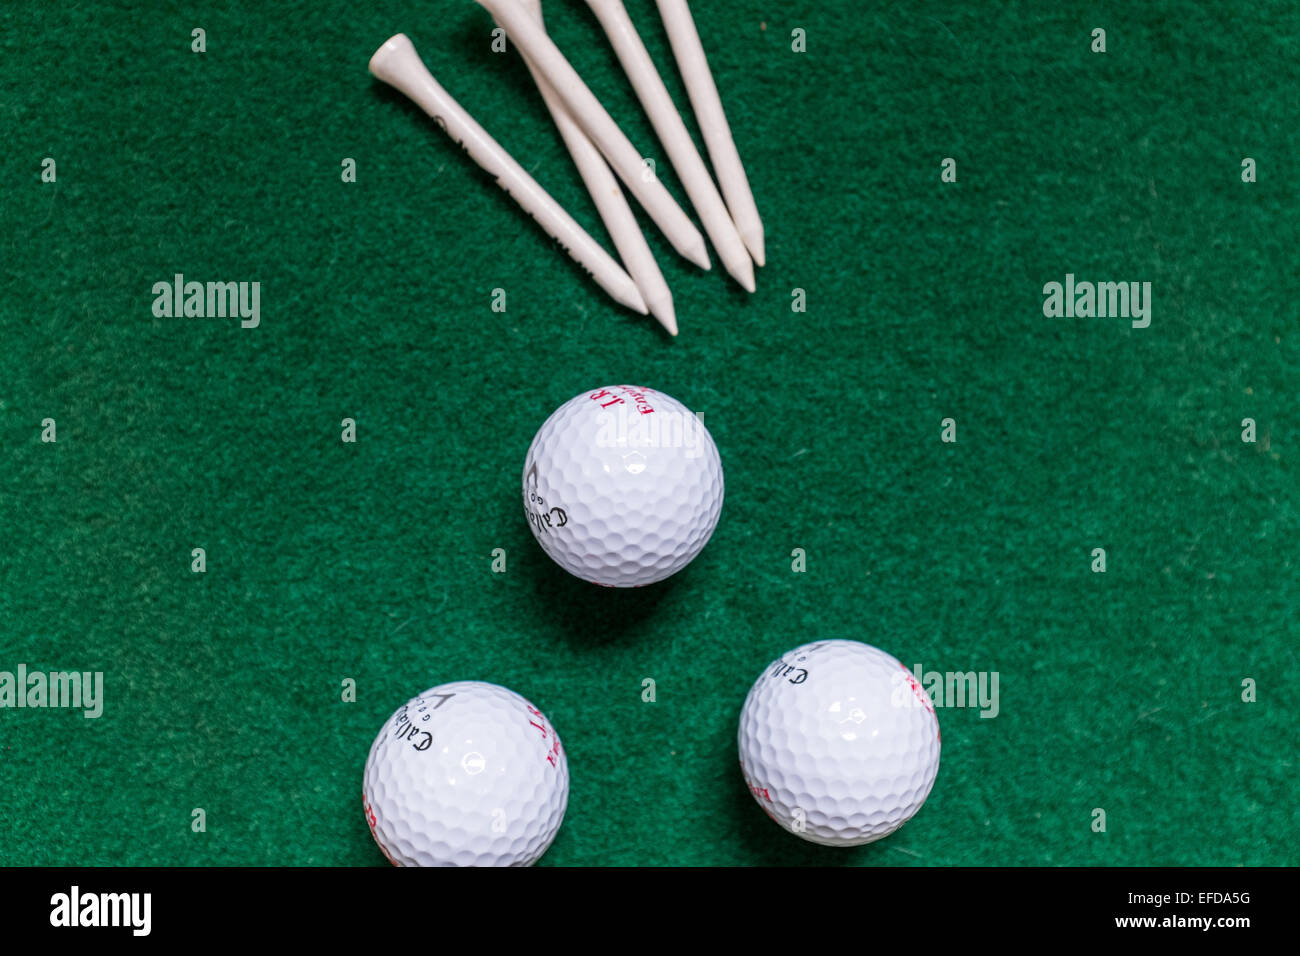 Golf balls and tees - Stock Image